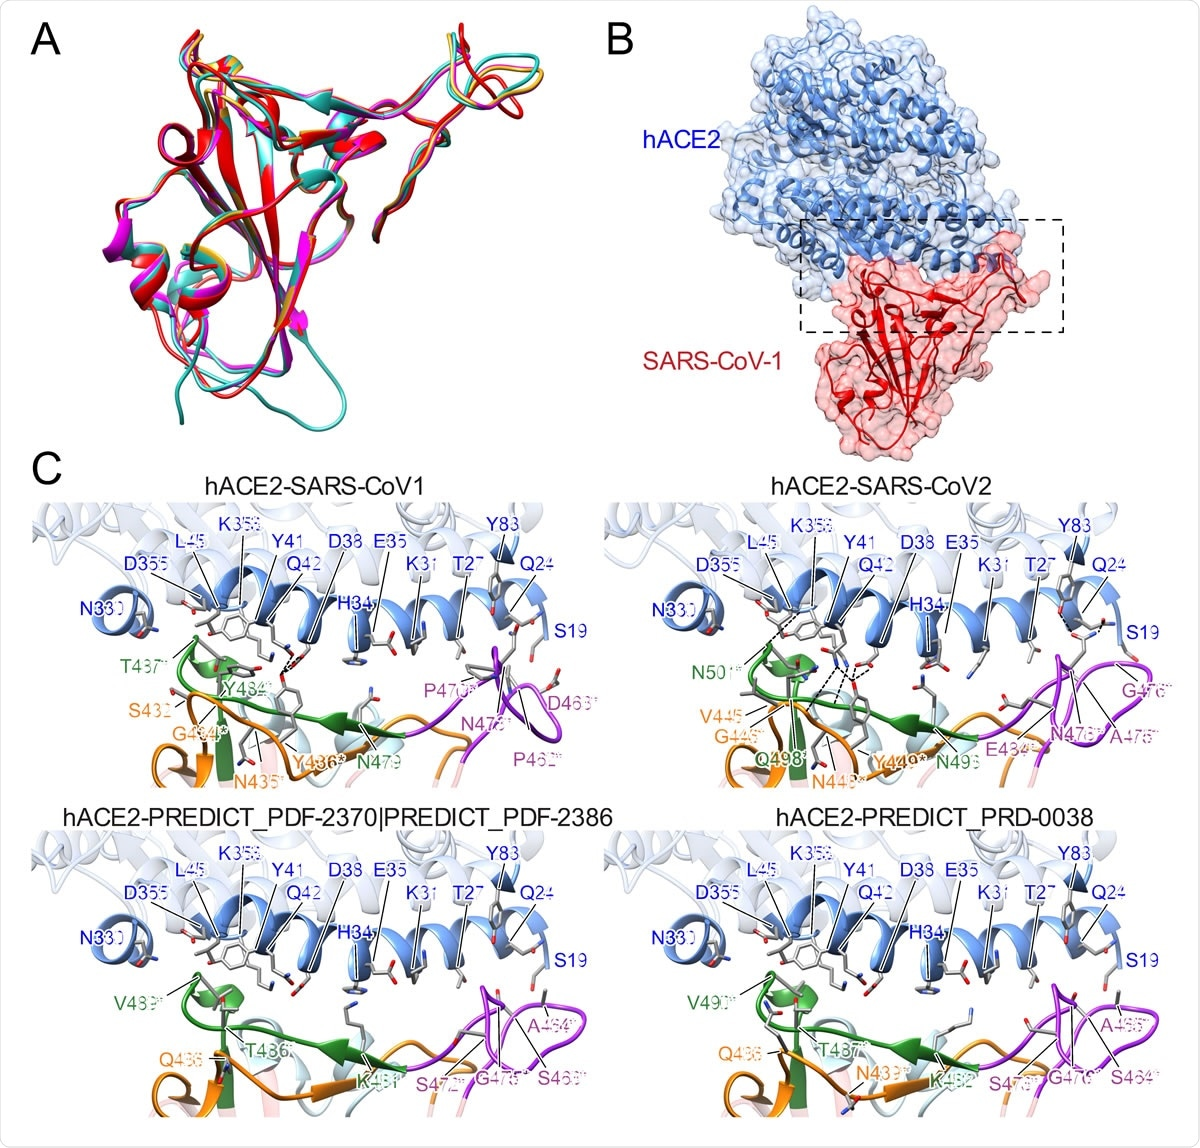 Structural modeling of sarbecovirus RBDs found in Uganda and Rwanda. (A) Structural superposition of the X-ray structures for the RBDs in SARS-CoV-1 (PDB 2ajf, red) [36] and SARS-CoV- 2 (PDB 6m0j, cyan) [64] and homology models for SARS-CoV found in Uganda (PREDICT_PDF-2370 and PREDICT_PDF-2386, purple) and Rwanda (PREDICT_PRD-0038, yellow). (B) Overview of the X574 ray structure of SAR-CoV-1 RBD (red) bound to hACE2 (blue) (PDB 2ajf, red) [36]. (C) Close-up view of the interface between hACE2 (blue) and RBDs in SARS-CoV-1 (PDB 2ajf, red) [36] and SARS-CoV- 2 (PDB 6m0j, cyan) [64] and homology models for viruses found in Uganda (PREDICT_PDF-2370 and PREDICT_PDF-2386, purple) and Rwanda (PREDICT_PRD-0038, yellow). Labeled RBD residues correspond to residues whose identity is not shared by SARS-CoV-1 and/or SARS-CoV-2 (asterisks denote residues whose identity is not shared by any ACE-2 binding SARS-CoV as dictated by Figure 3). Labeled hACE2 residues correspond to residues within 5Å of RBD residues depicted.